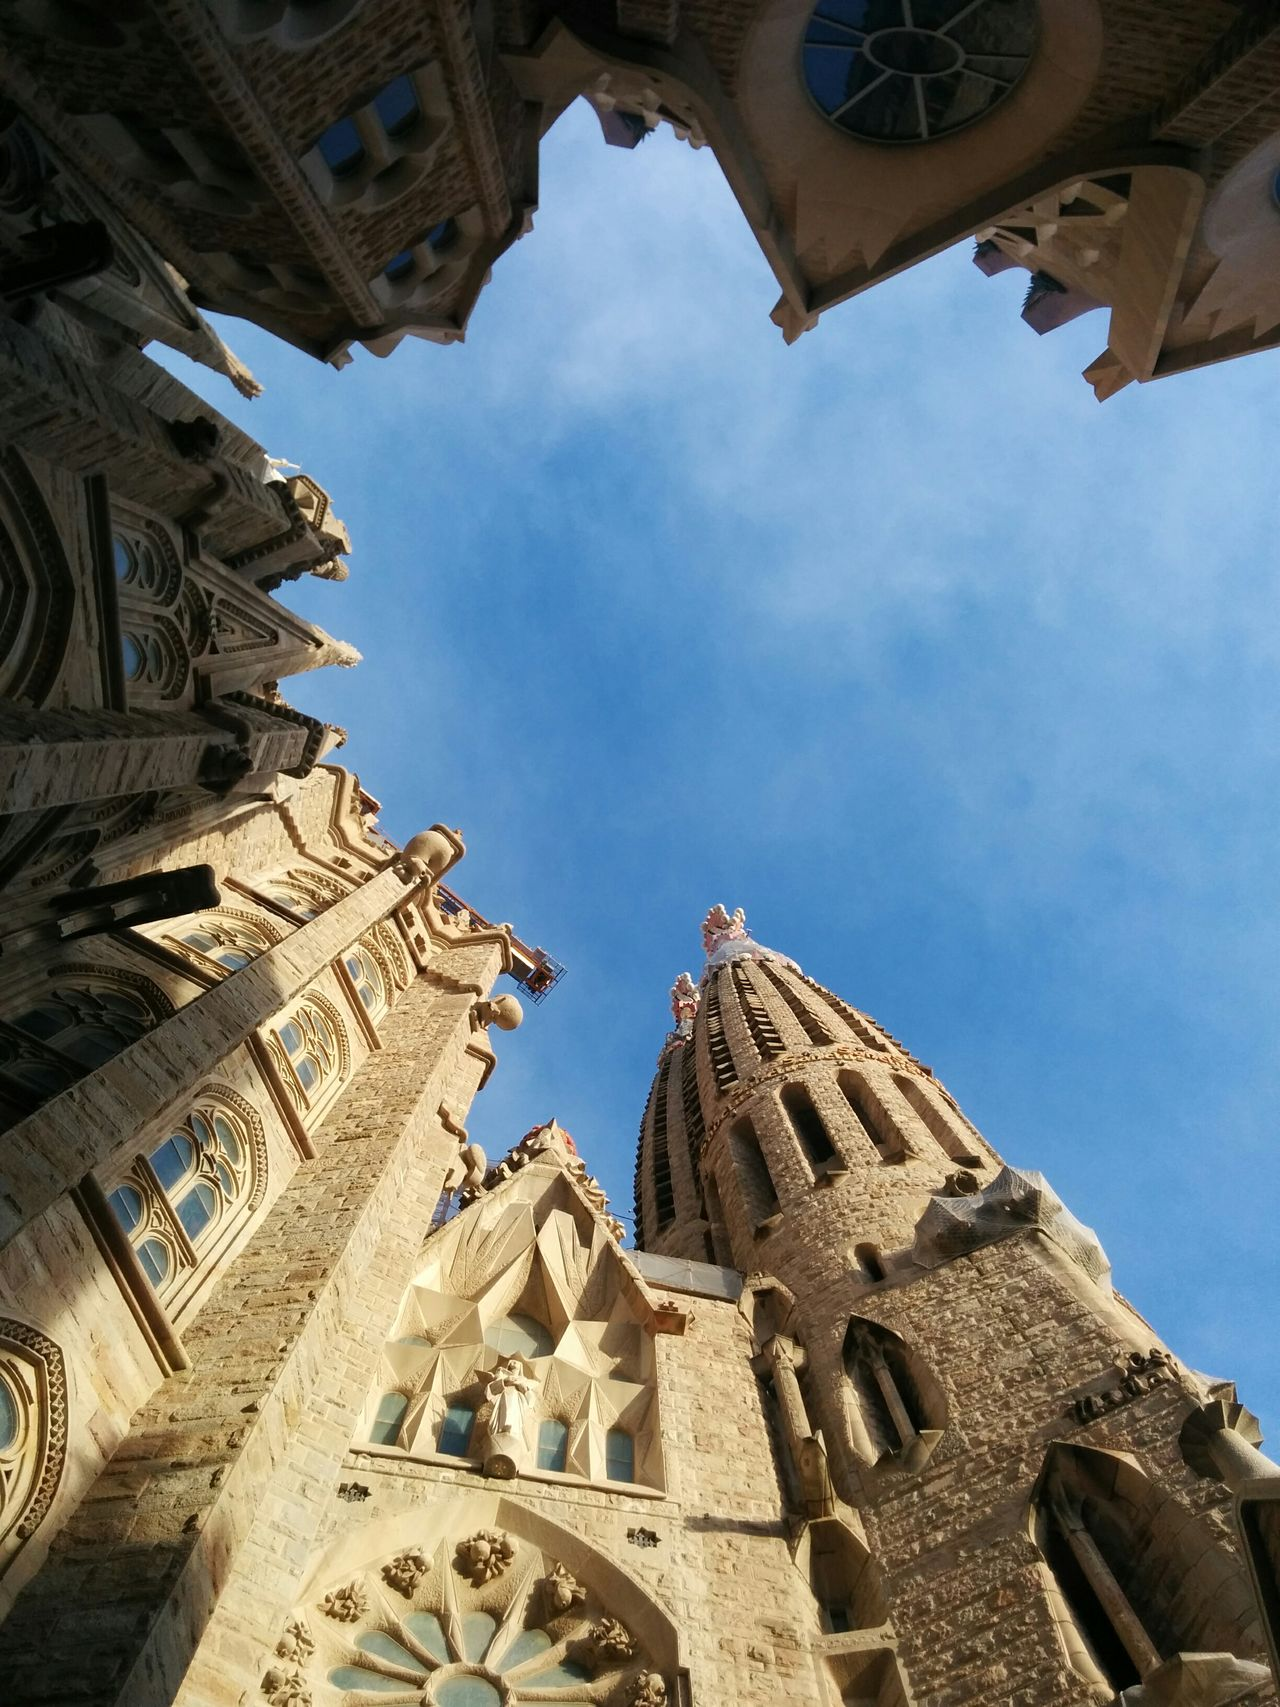 Barcelona Church Towers Sagrada Familia The Architect - 2017 EyeEm Awards